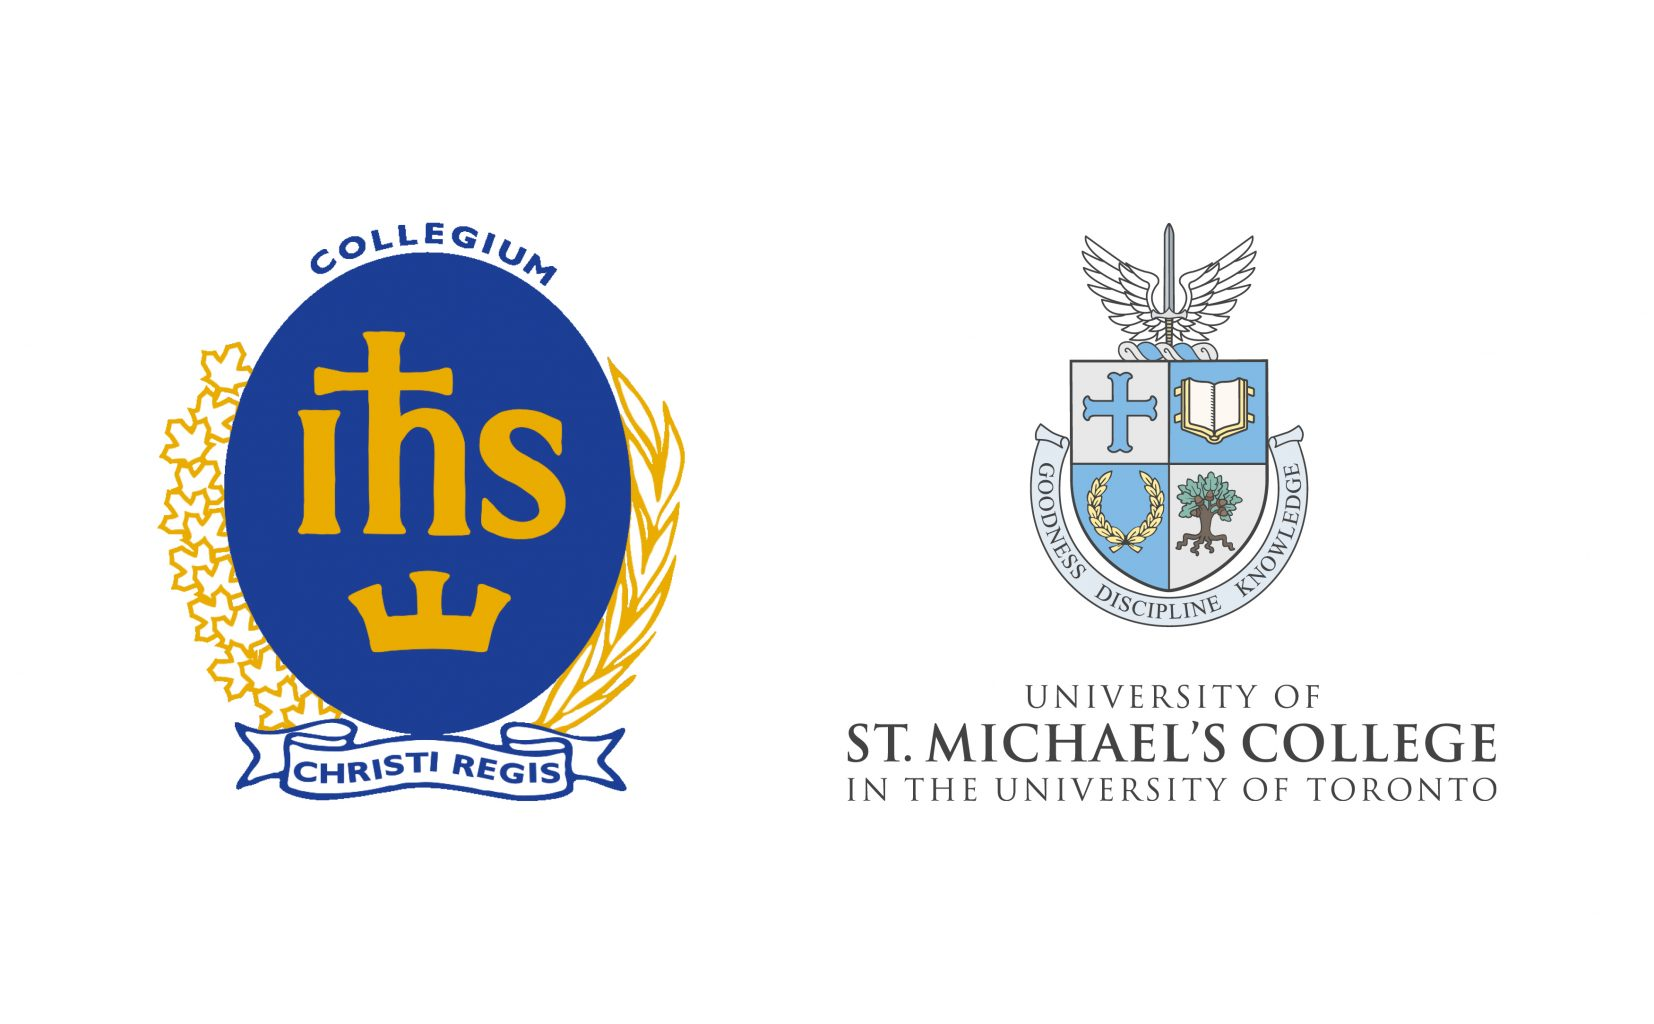 The logos of Regis College and the University of St. Michael's College